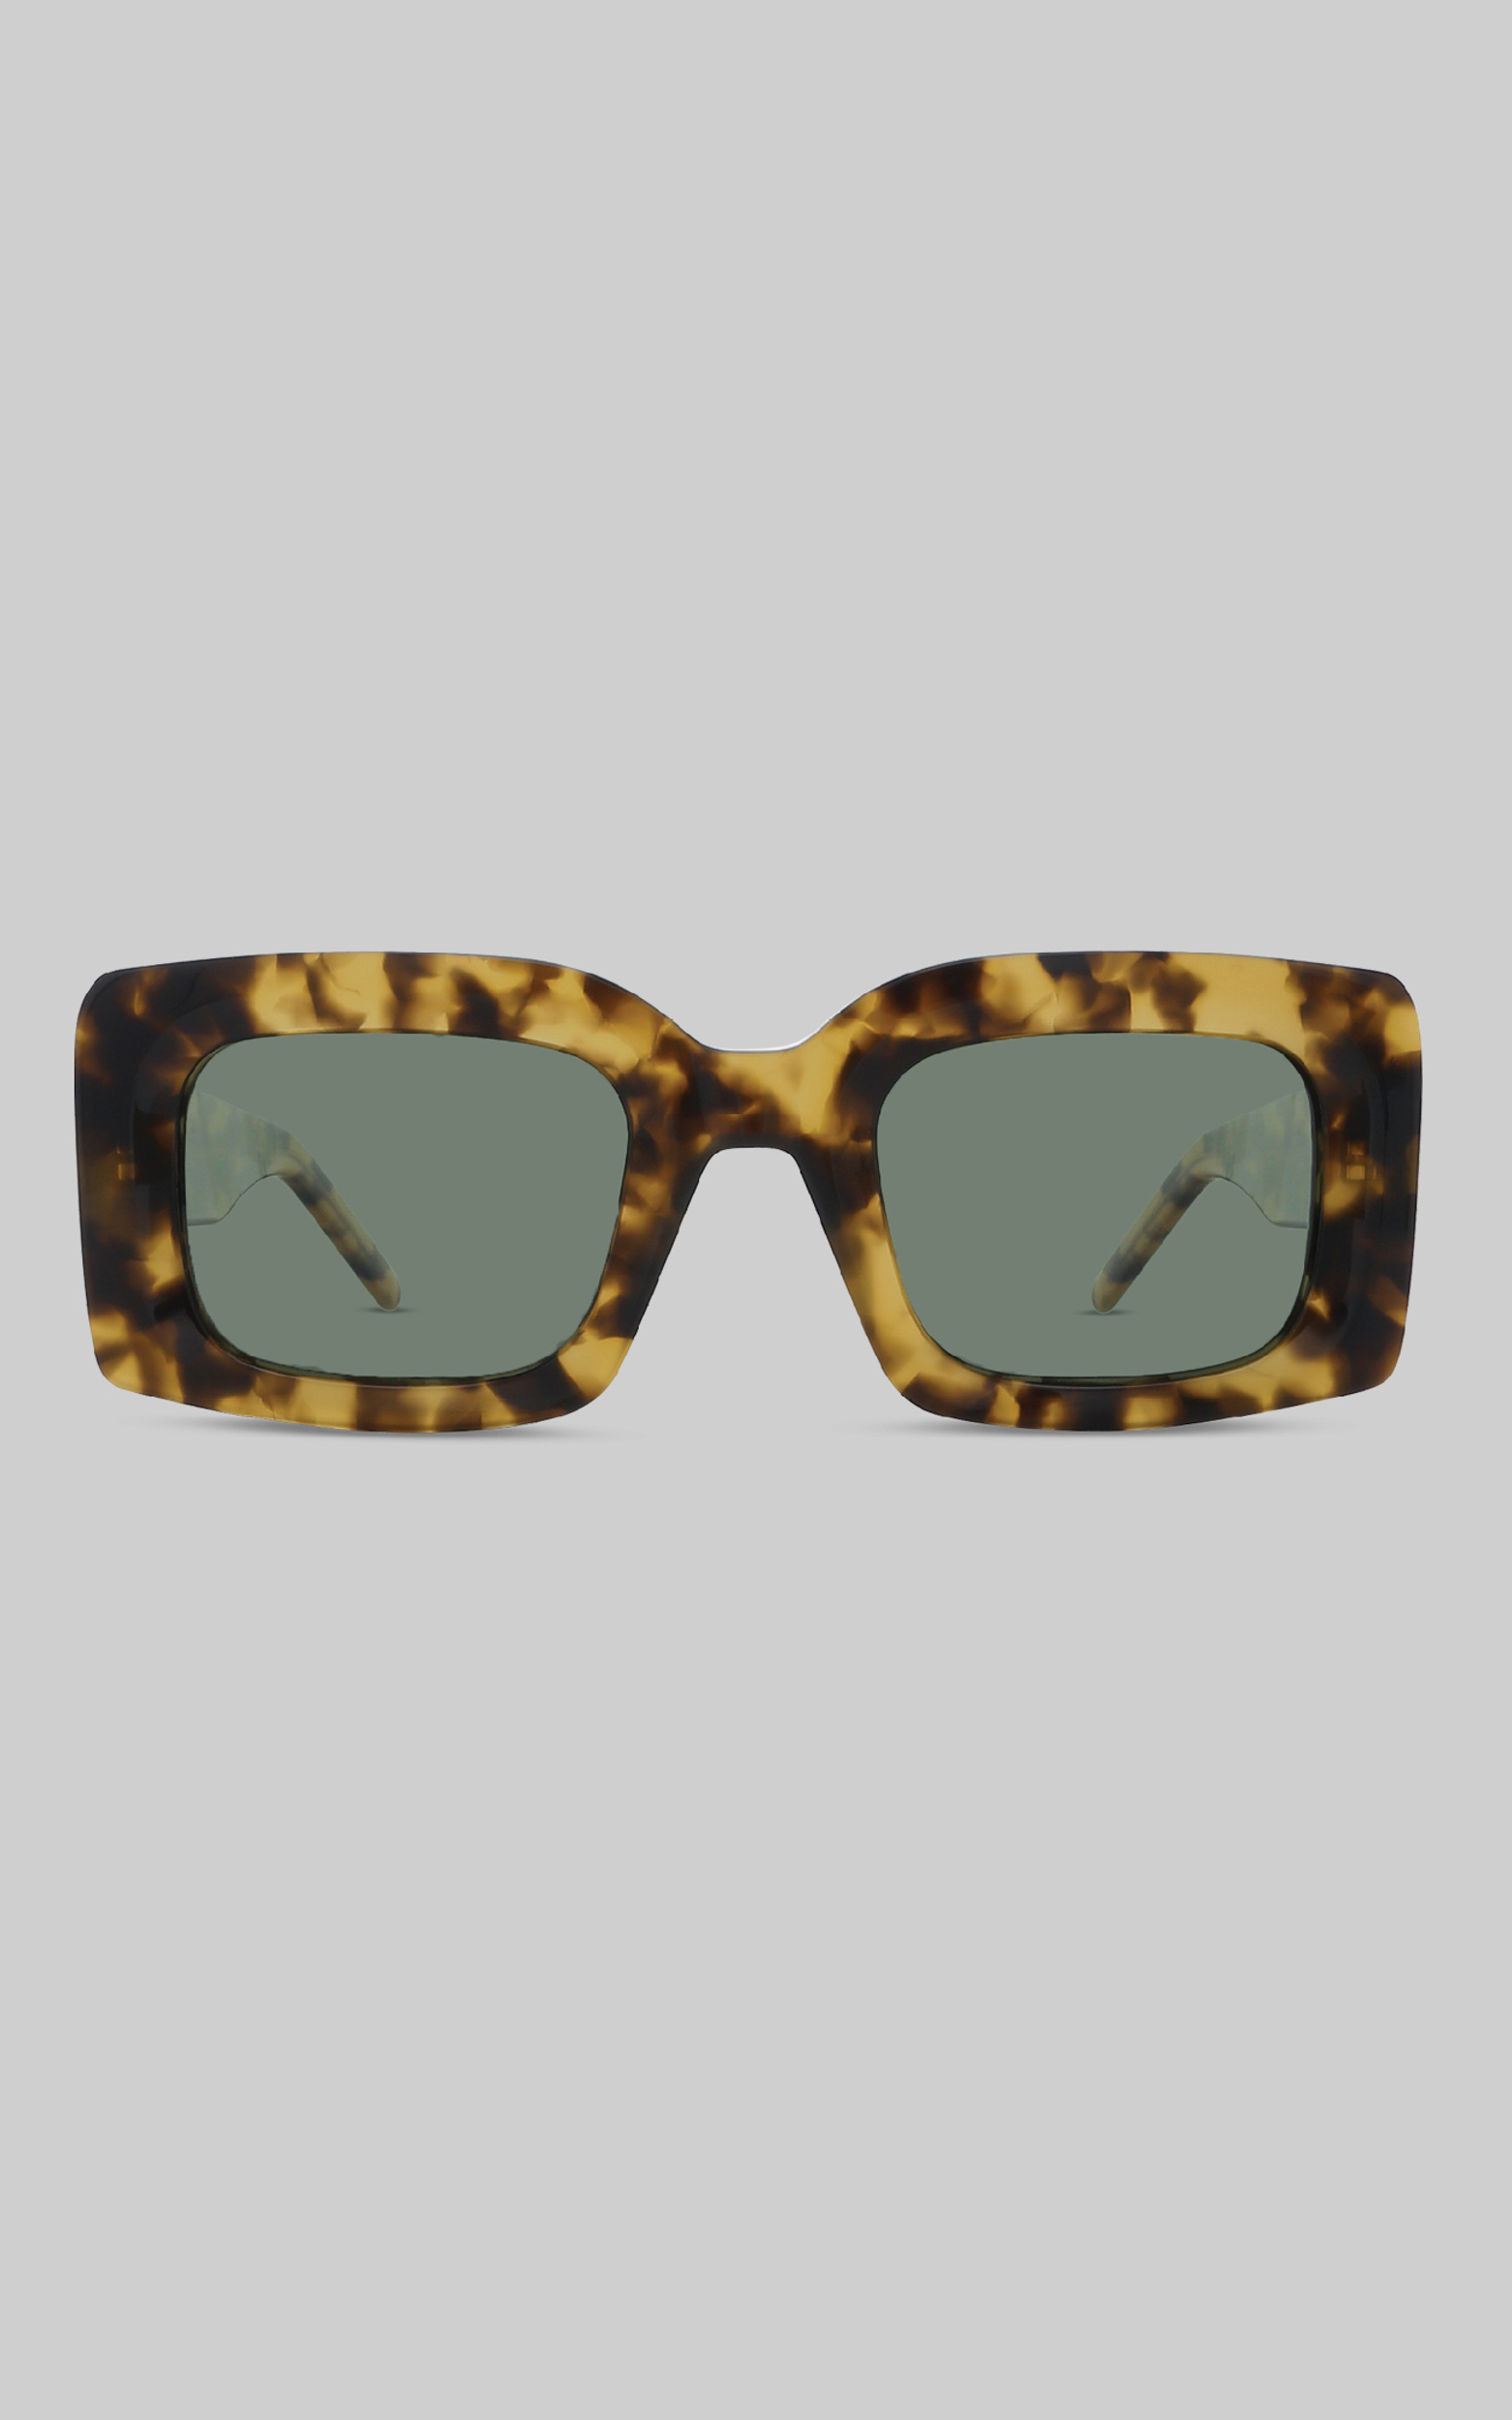 BANBE EYEWEAR - THE KENDALL in TORT-GREEN - NoSize, GRN3, hi-res image number null